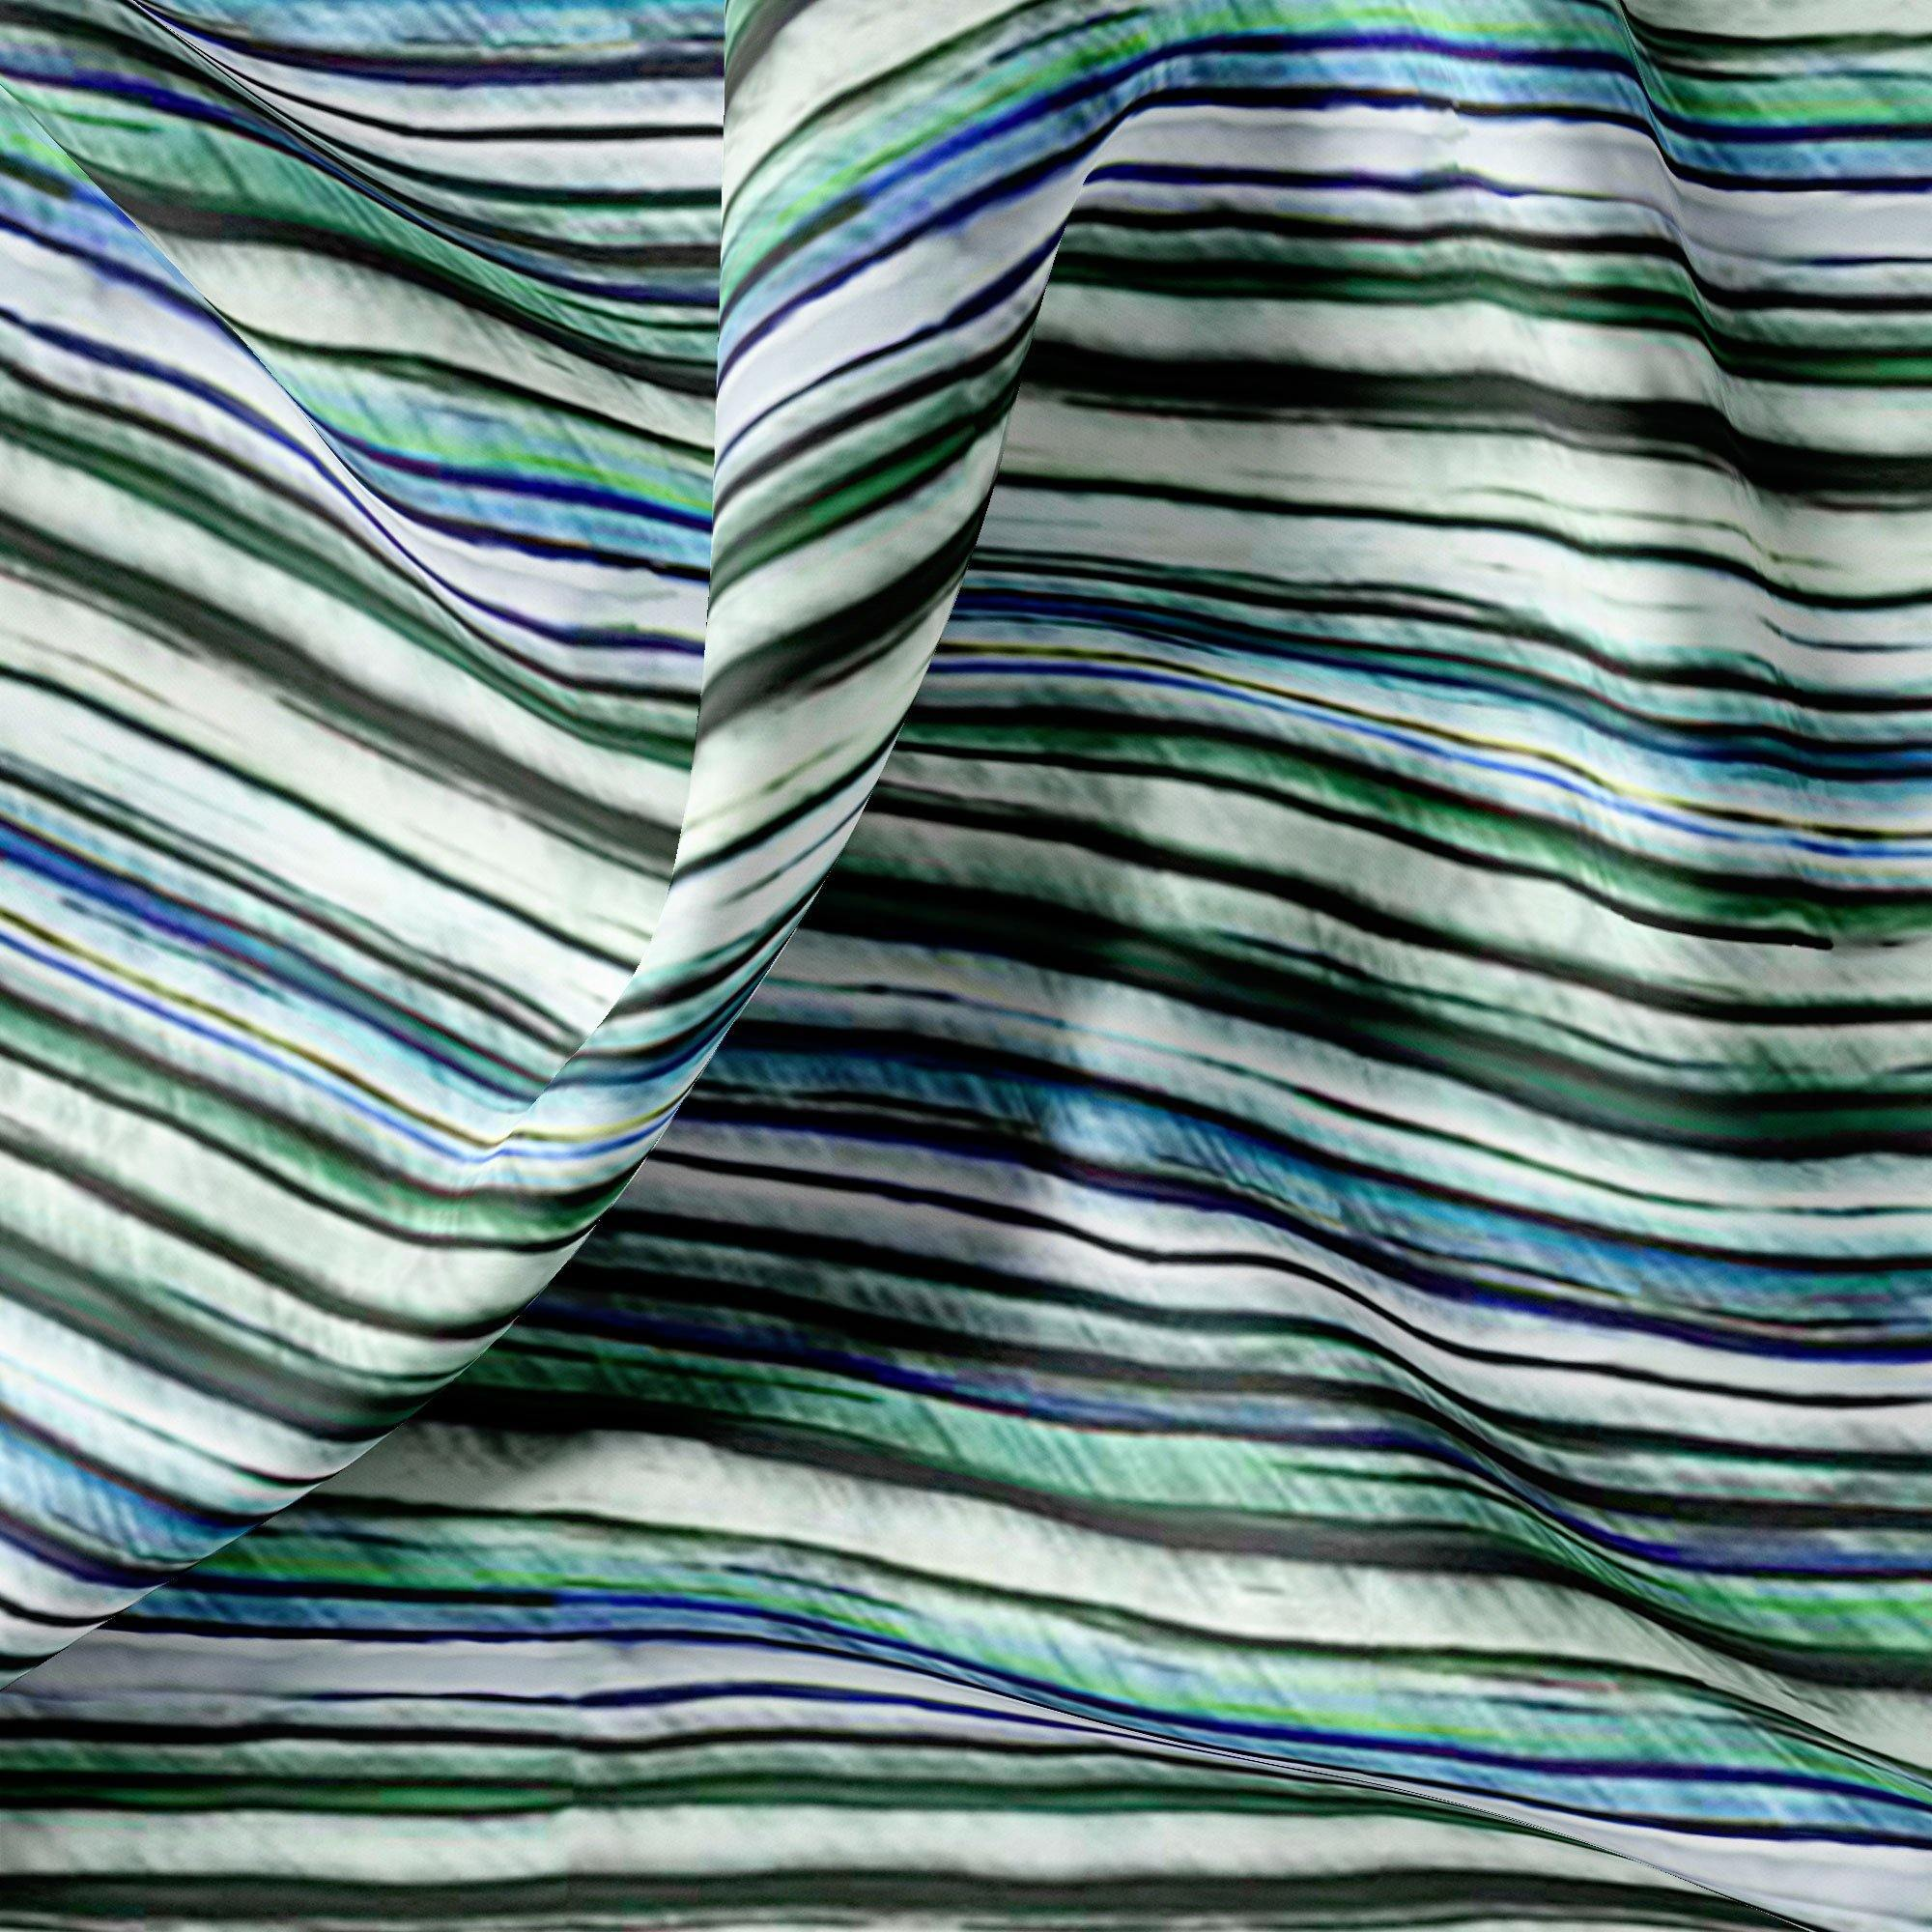 Random Stripes Pattern Digital Printed Fabric - FAB VOGUE Studio. Shop Fabric @ www.fabvoguestudio.com